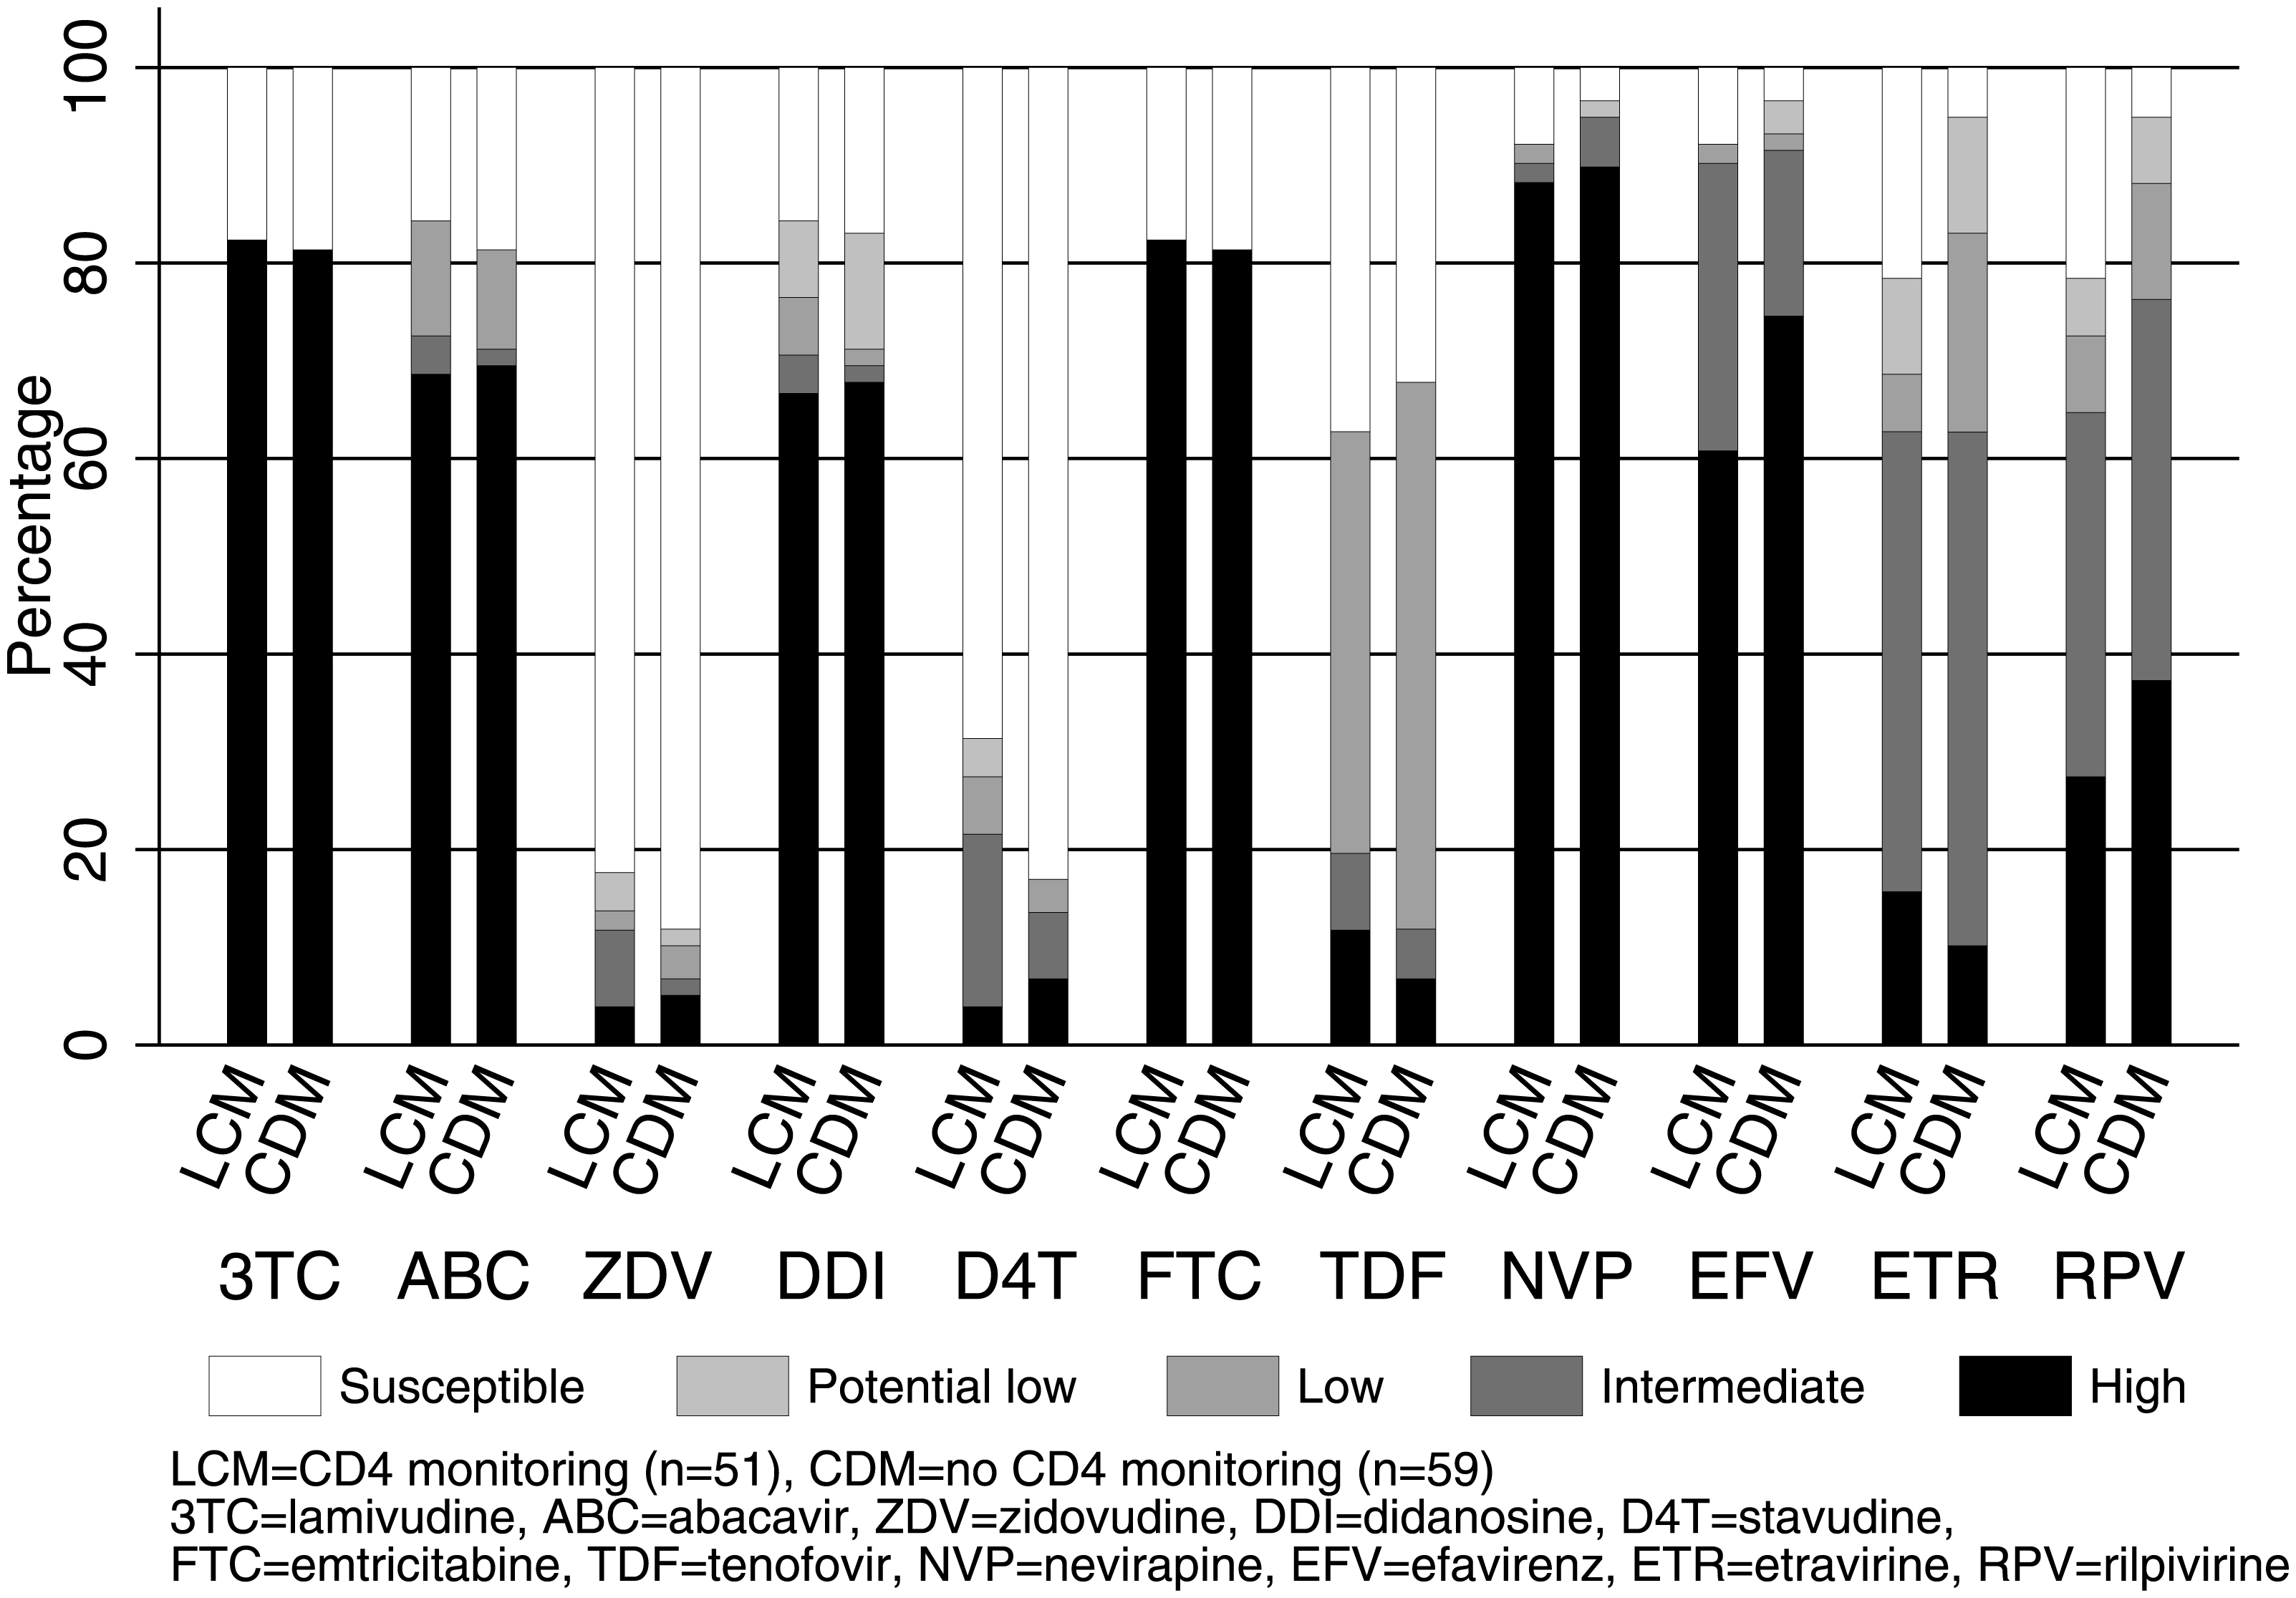 Predicted NRTI and NNRTI susceptibility in 2NRTI+NNRTI with VL &gt;1,000 copies/ml after median 4 years on ART (<i>n</i> = 110).